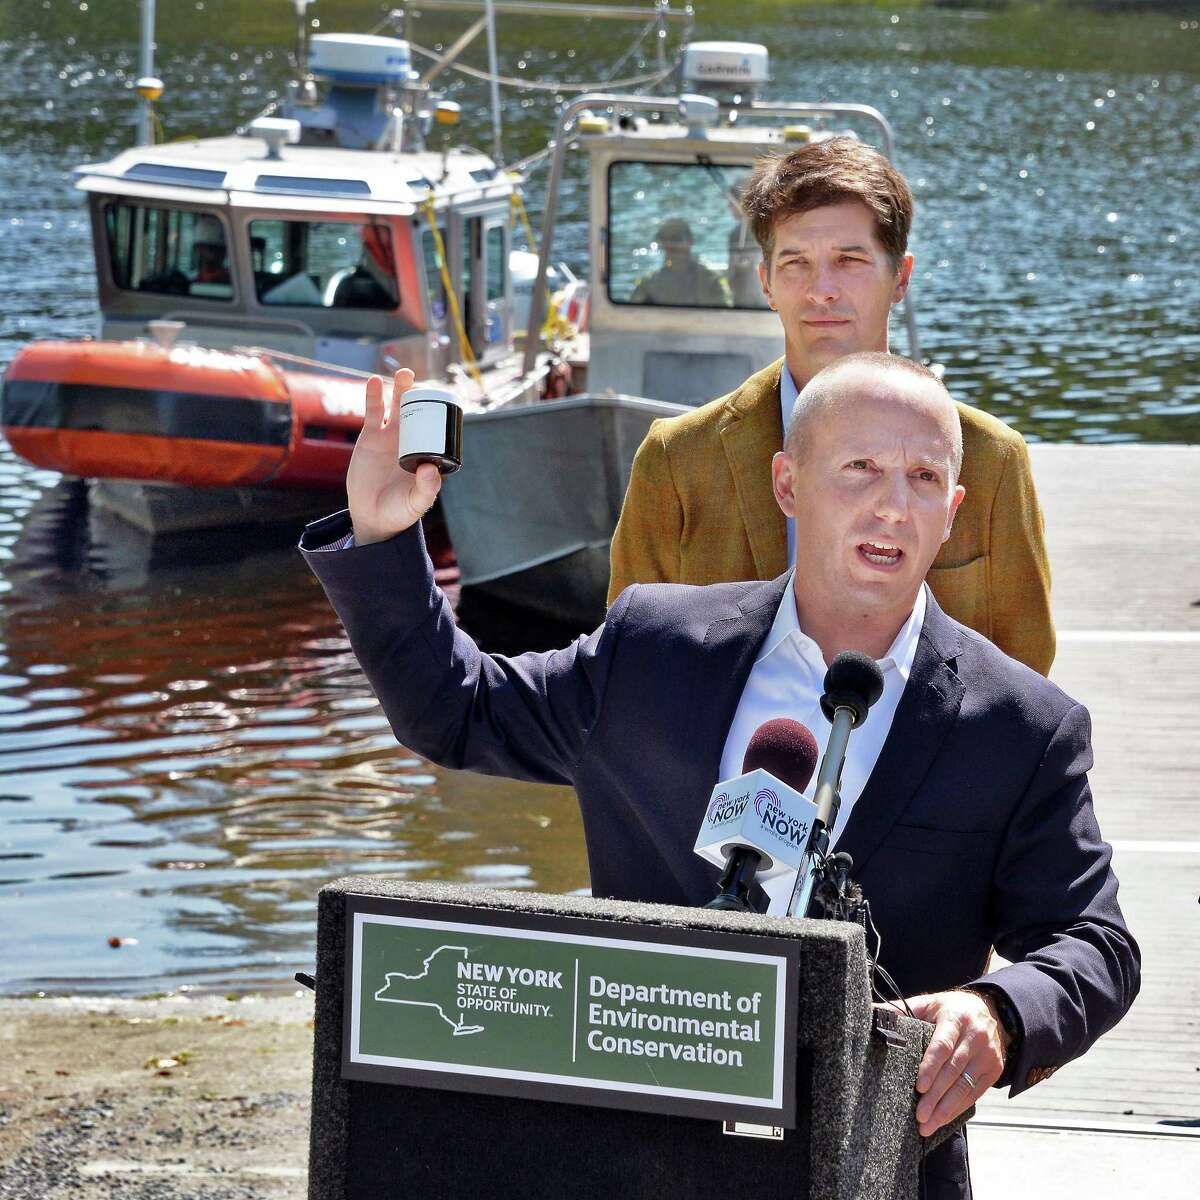 DEC Commissioner Basil Seggos holds up one of 1,600 samples collected from the upper Hudson River during a news conference calling for continued PCB clean-up in the river Wednesday August 30, 2017 in Moreau, NY. Scenic Hudson's Andy Bicking at top. (John Carl D'Annibale / Times Union)